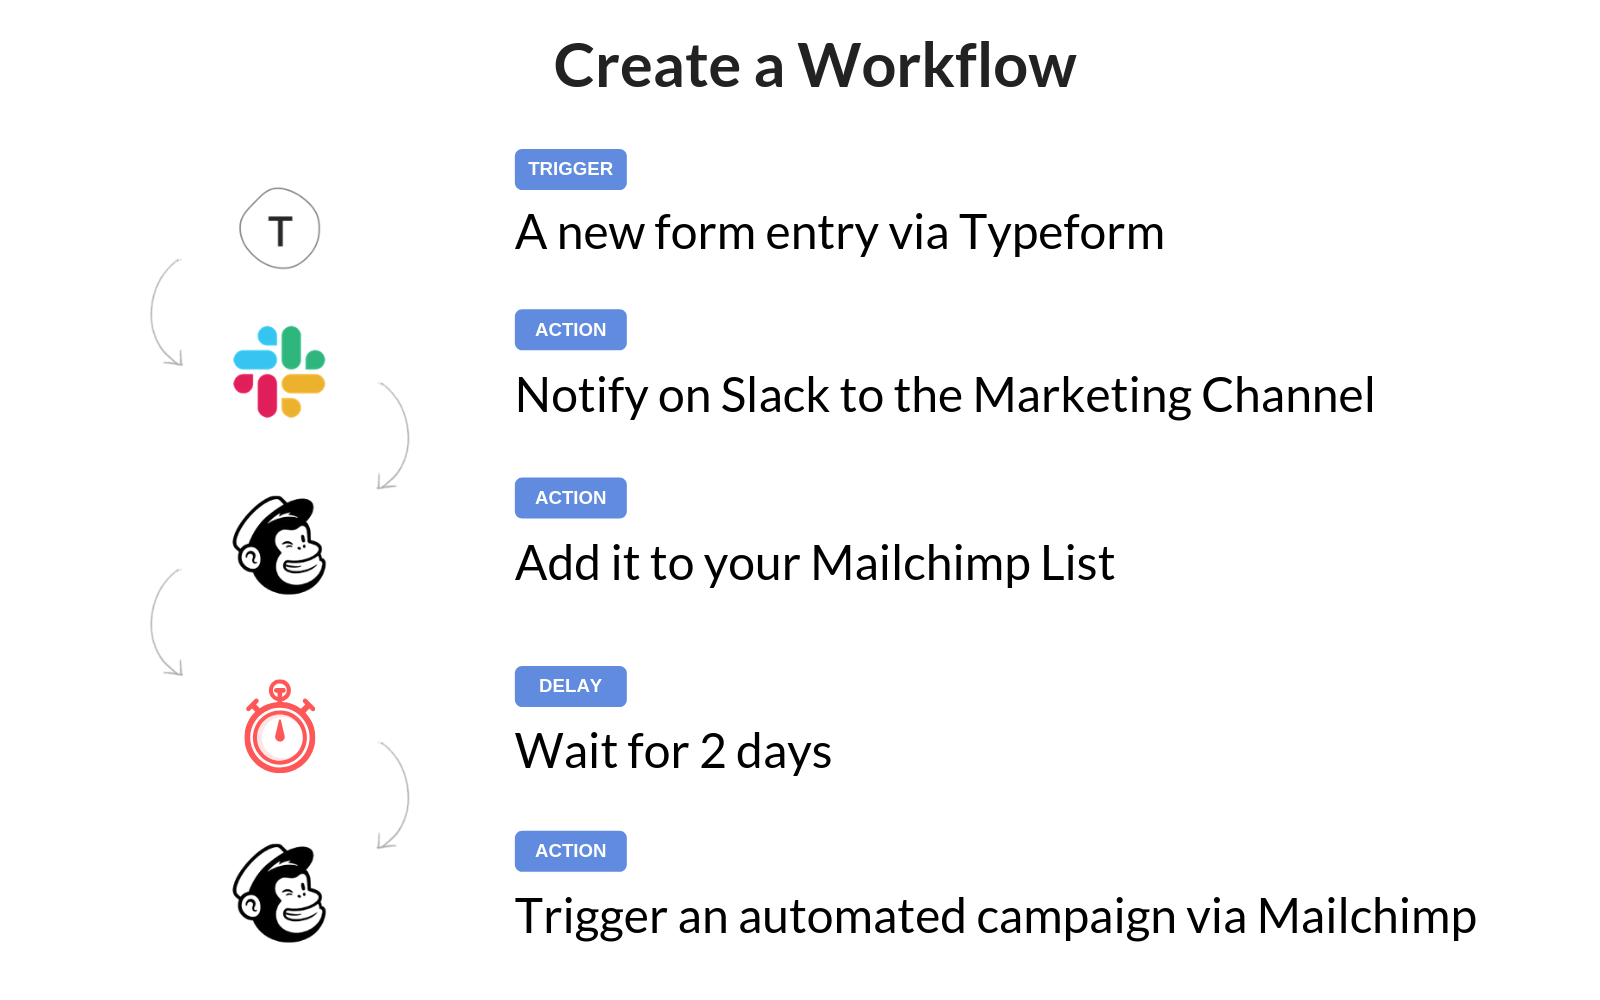 Creating a workflow when using Typeform, Slack, and Mailchimp together